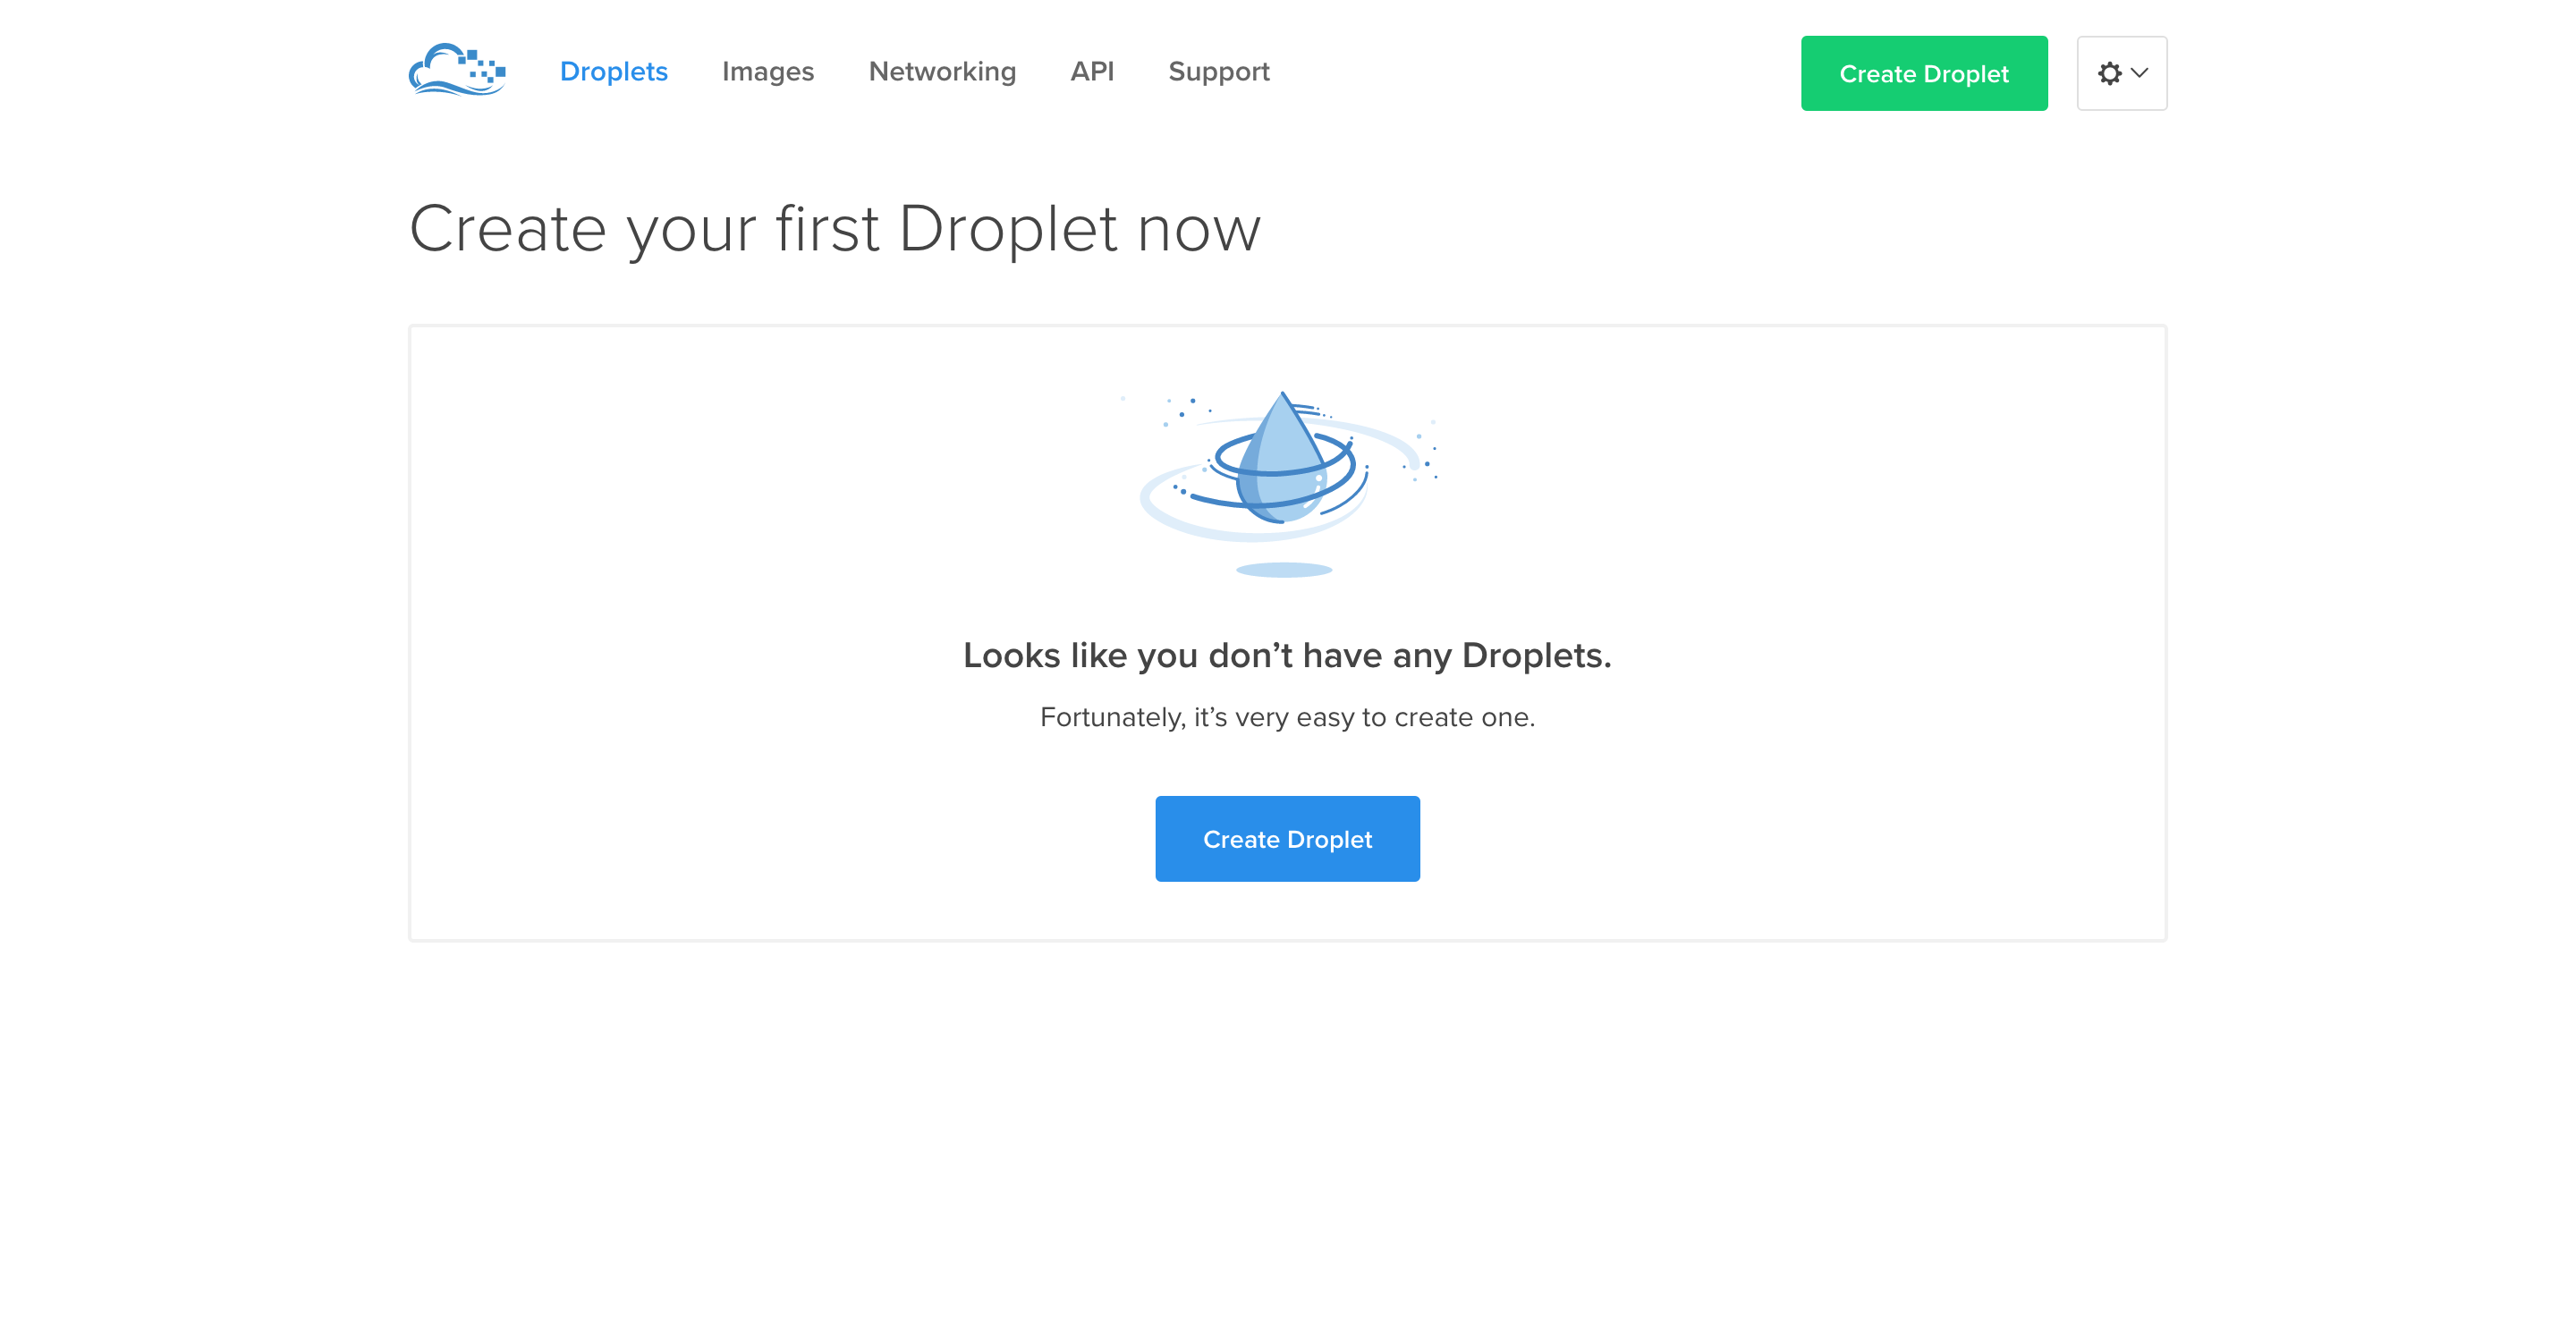 screencapture-cloud-digitalocean-com-droplets-1459723214404.png (178.8 kB)